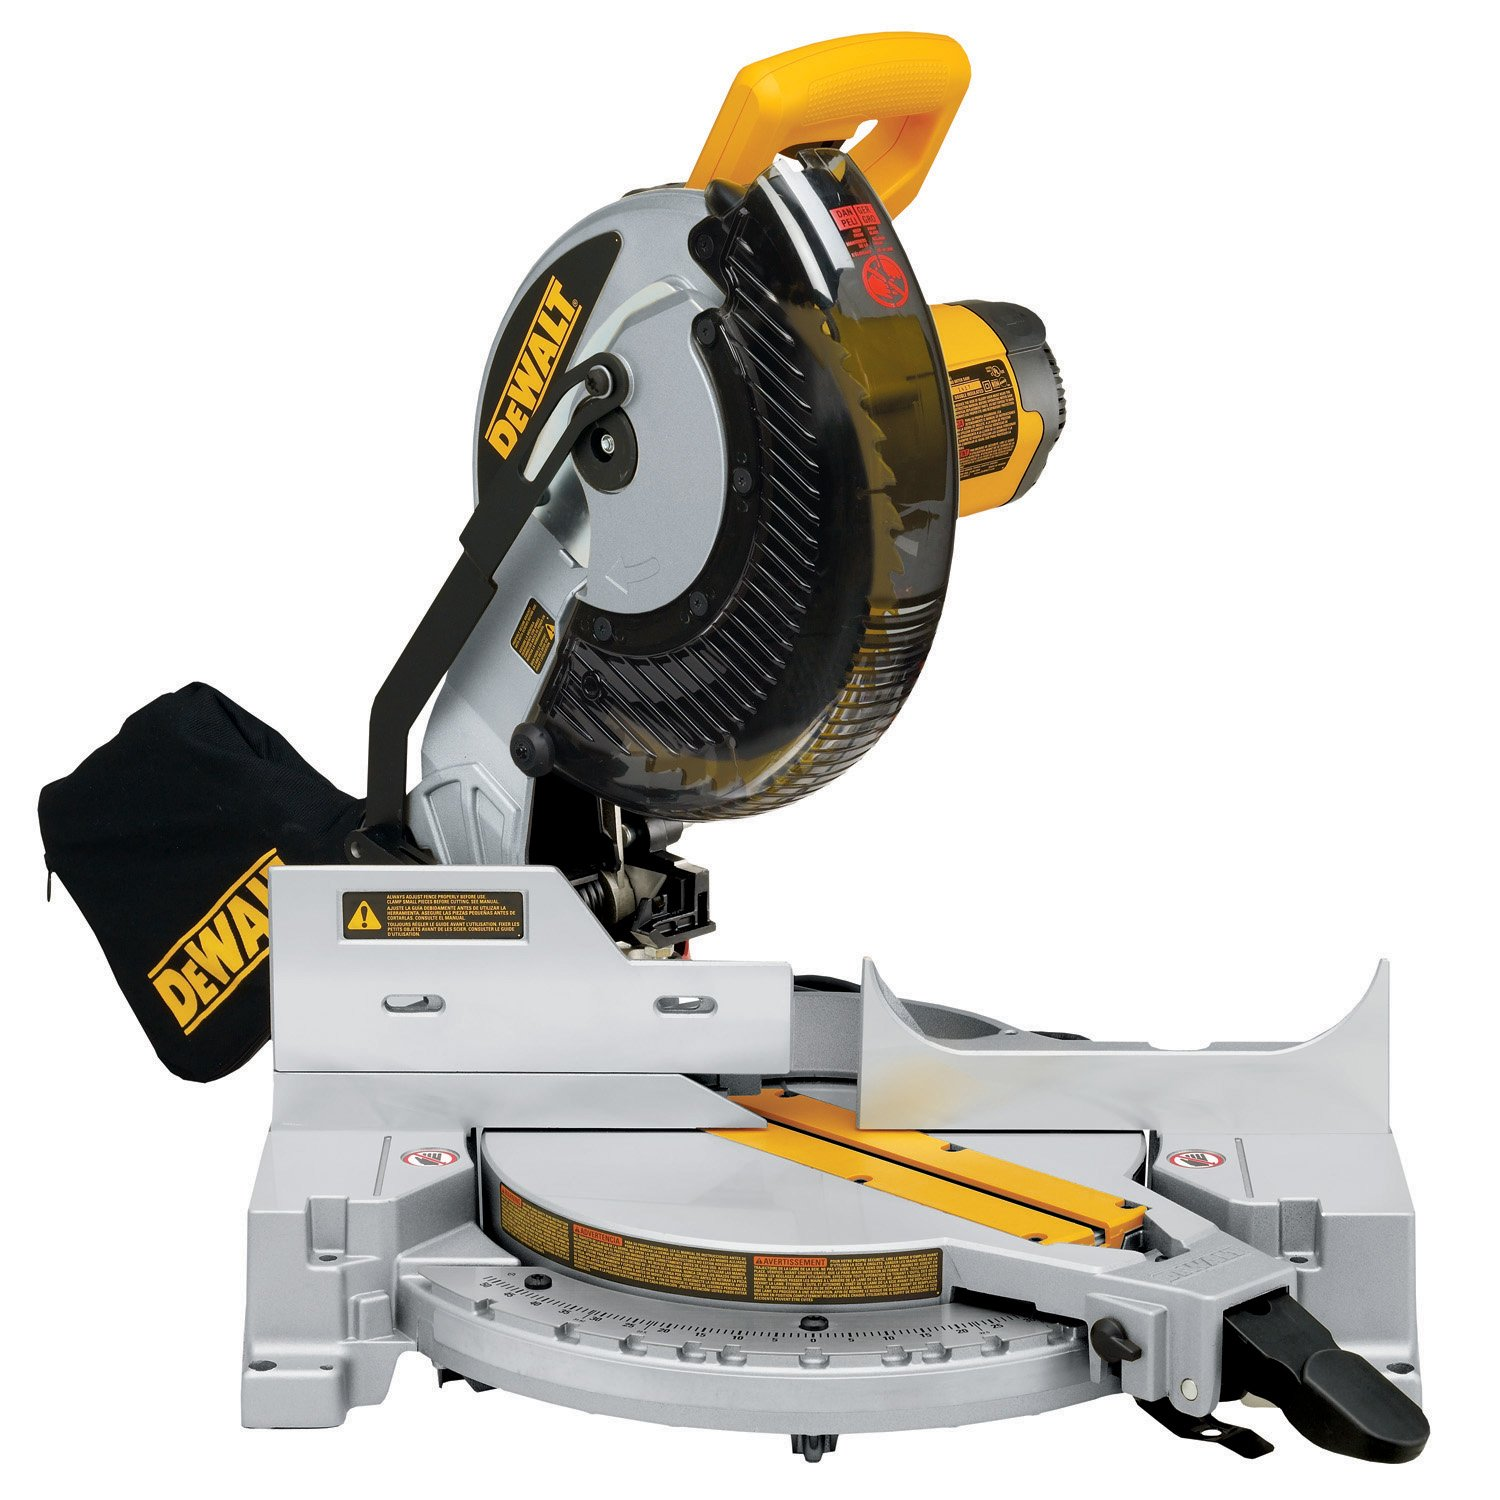 Dewalt Dw713 10 Inch Compound Miter Saw Review